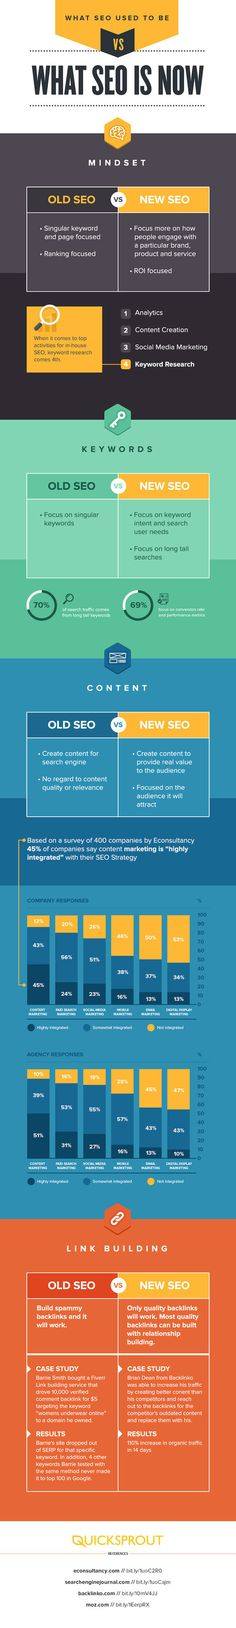 SEO: what it used to be vs what it is now | Content Marketing, Curation, Social Media & SEO | Scoop.it